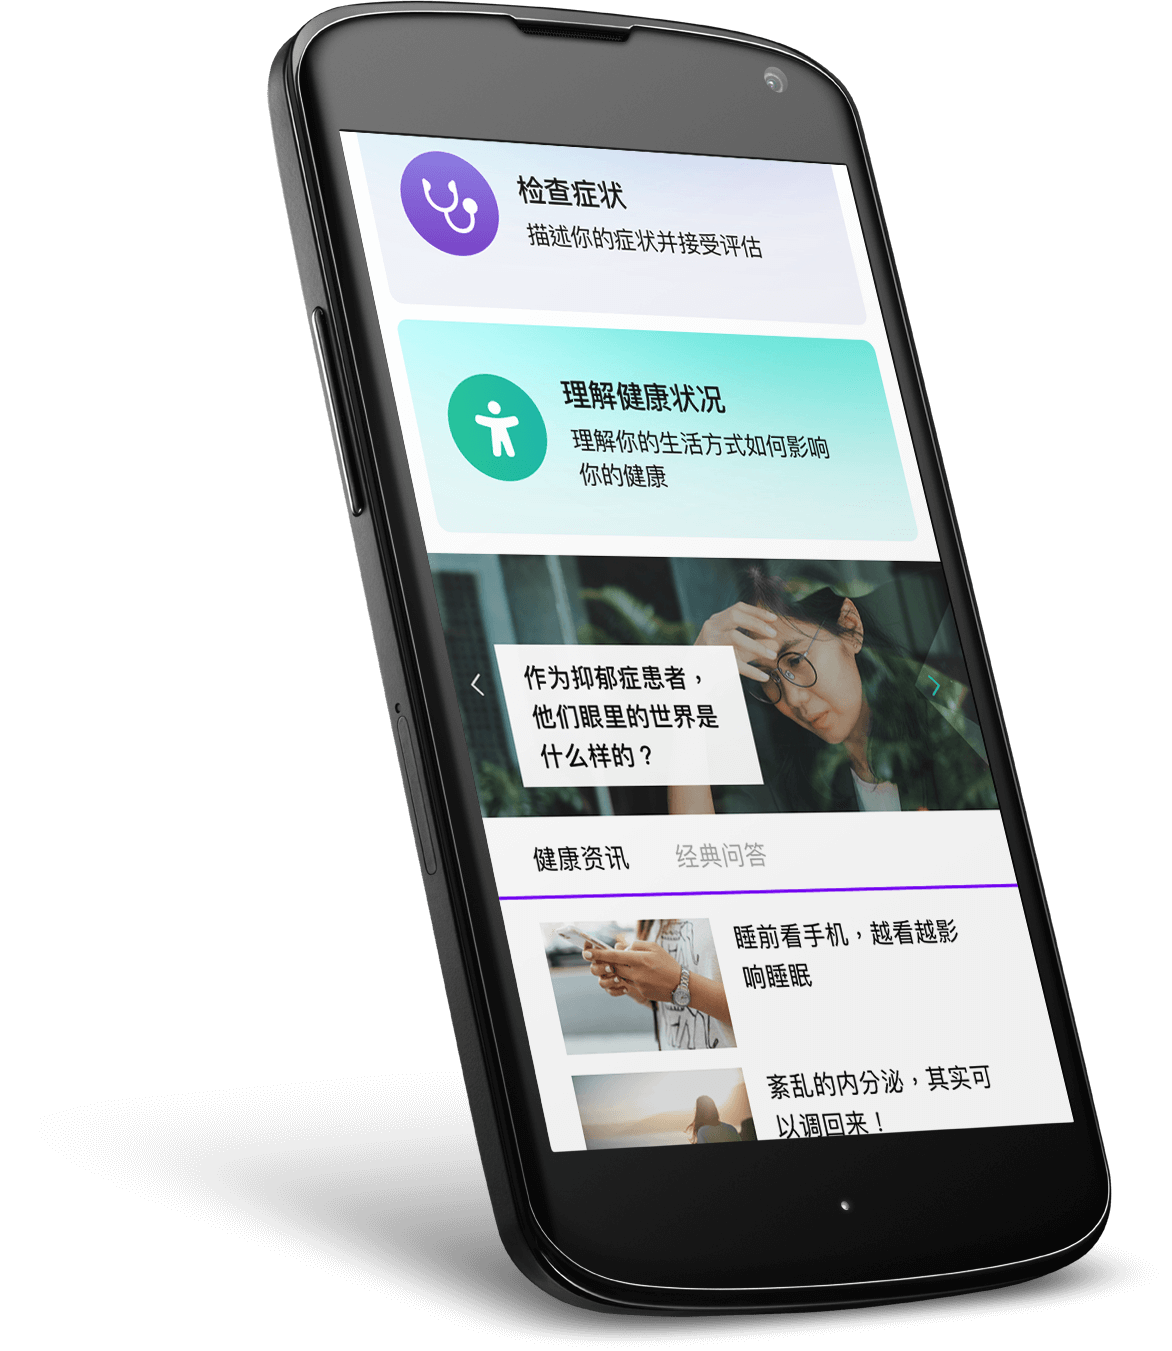 Product design with Asian elements on mobile